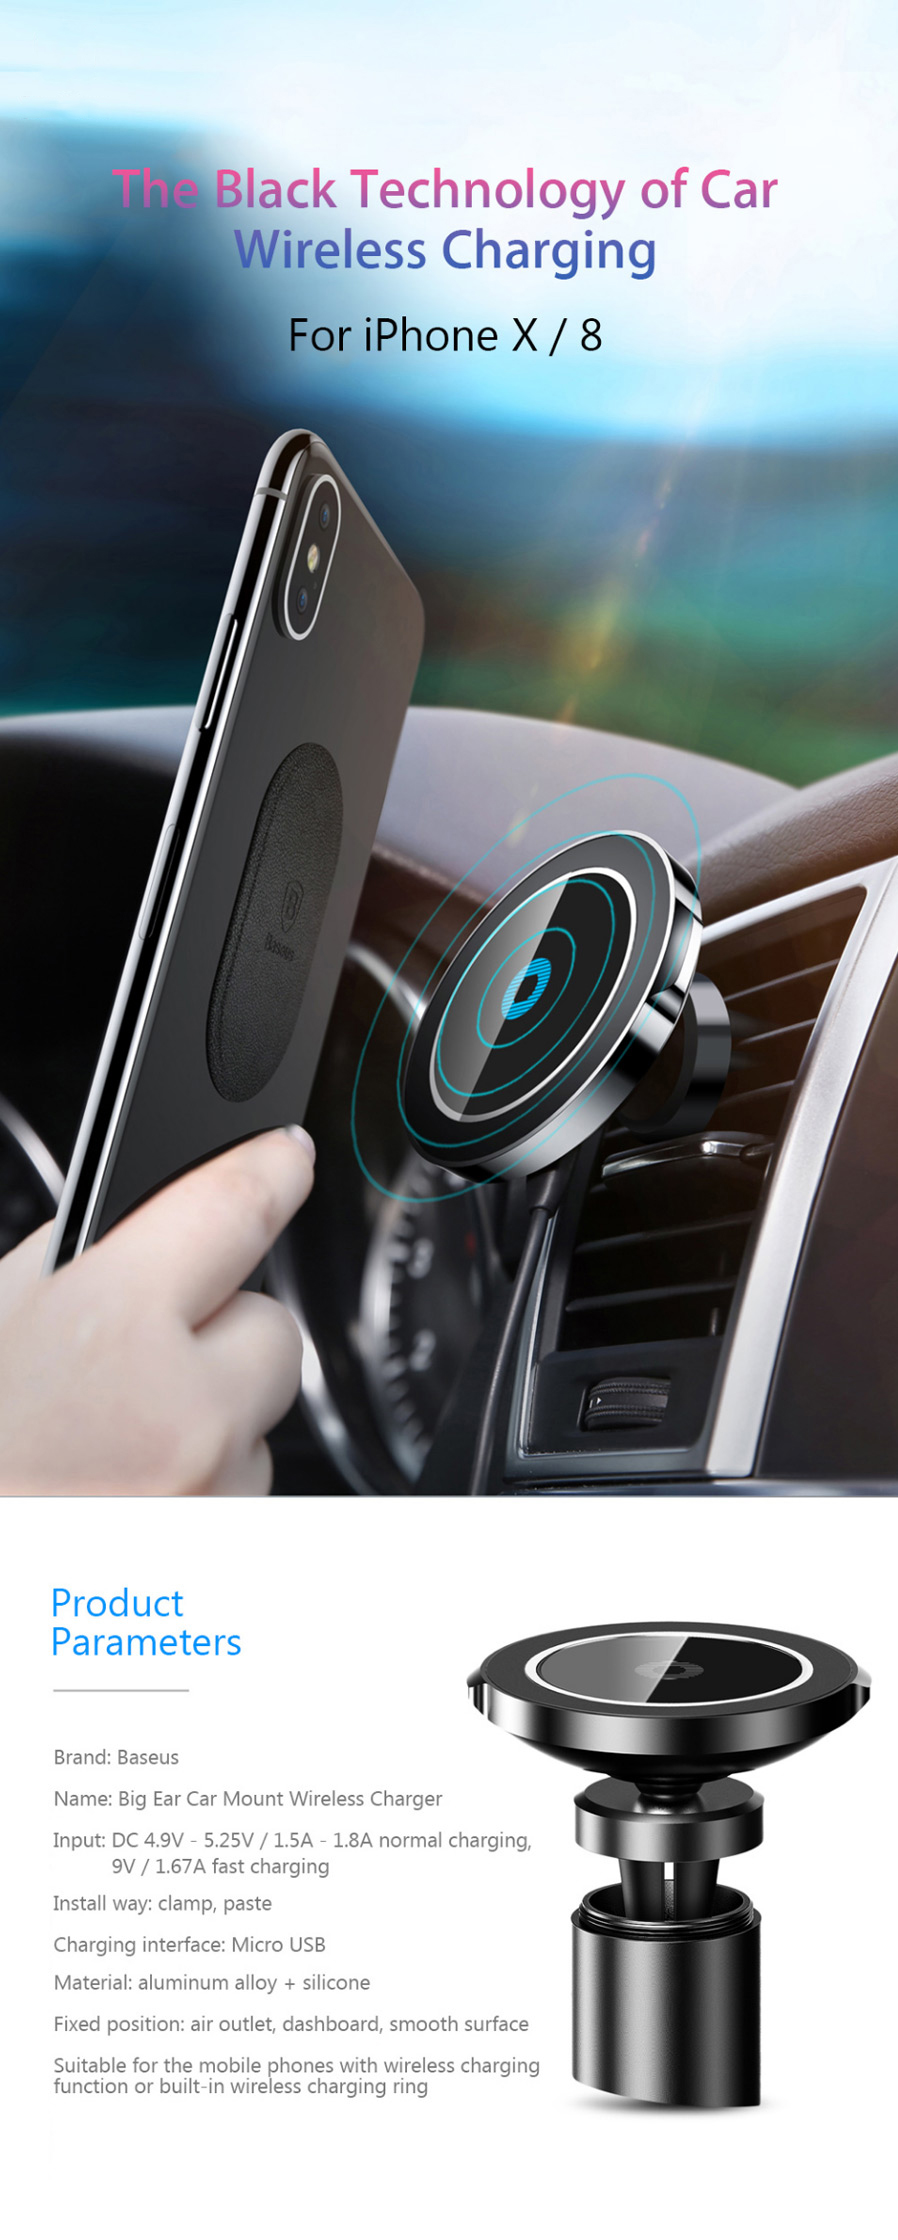 Baseus Big Ears Magnetic Car Mount Fast Charge Qi Wireless Charger Universal Receiver Reveres Port For Smartphone Input Dc 49v 525v 15a 18a Normal Charging 9v 167a Install Way Clamp Paste Interface Micro Usb